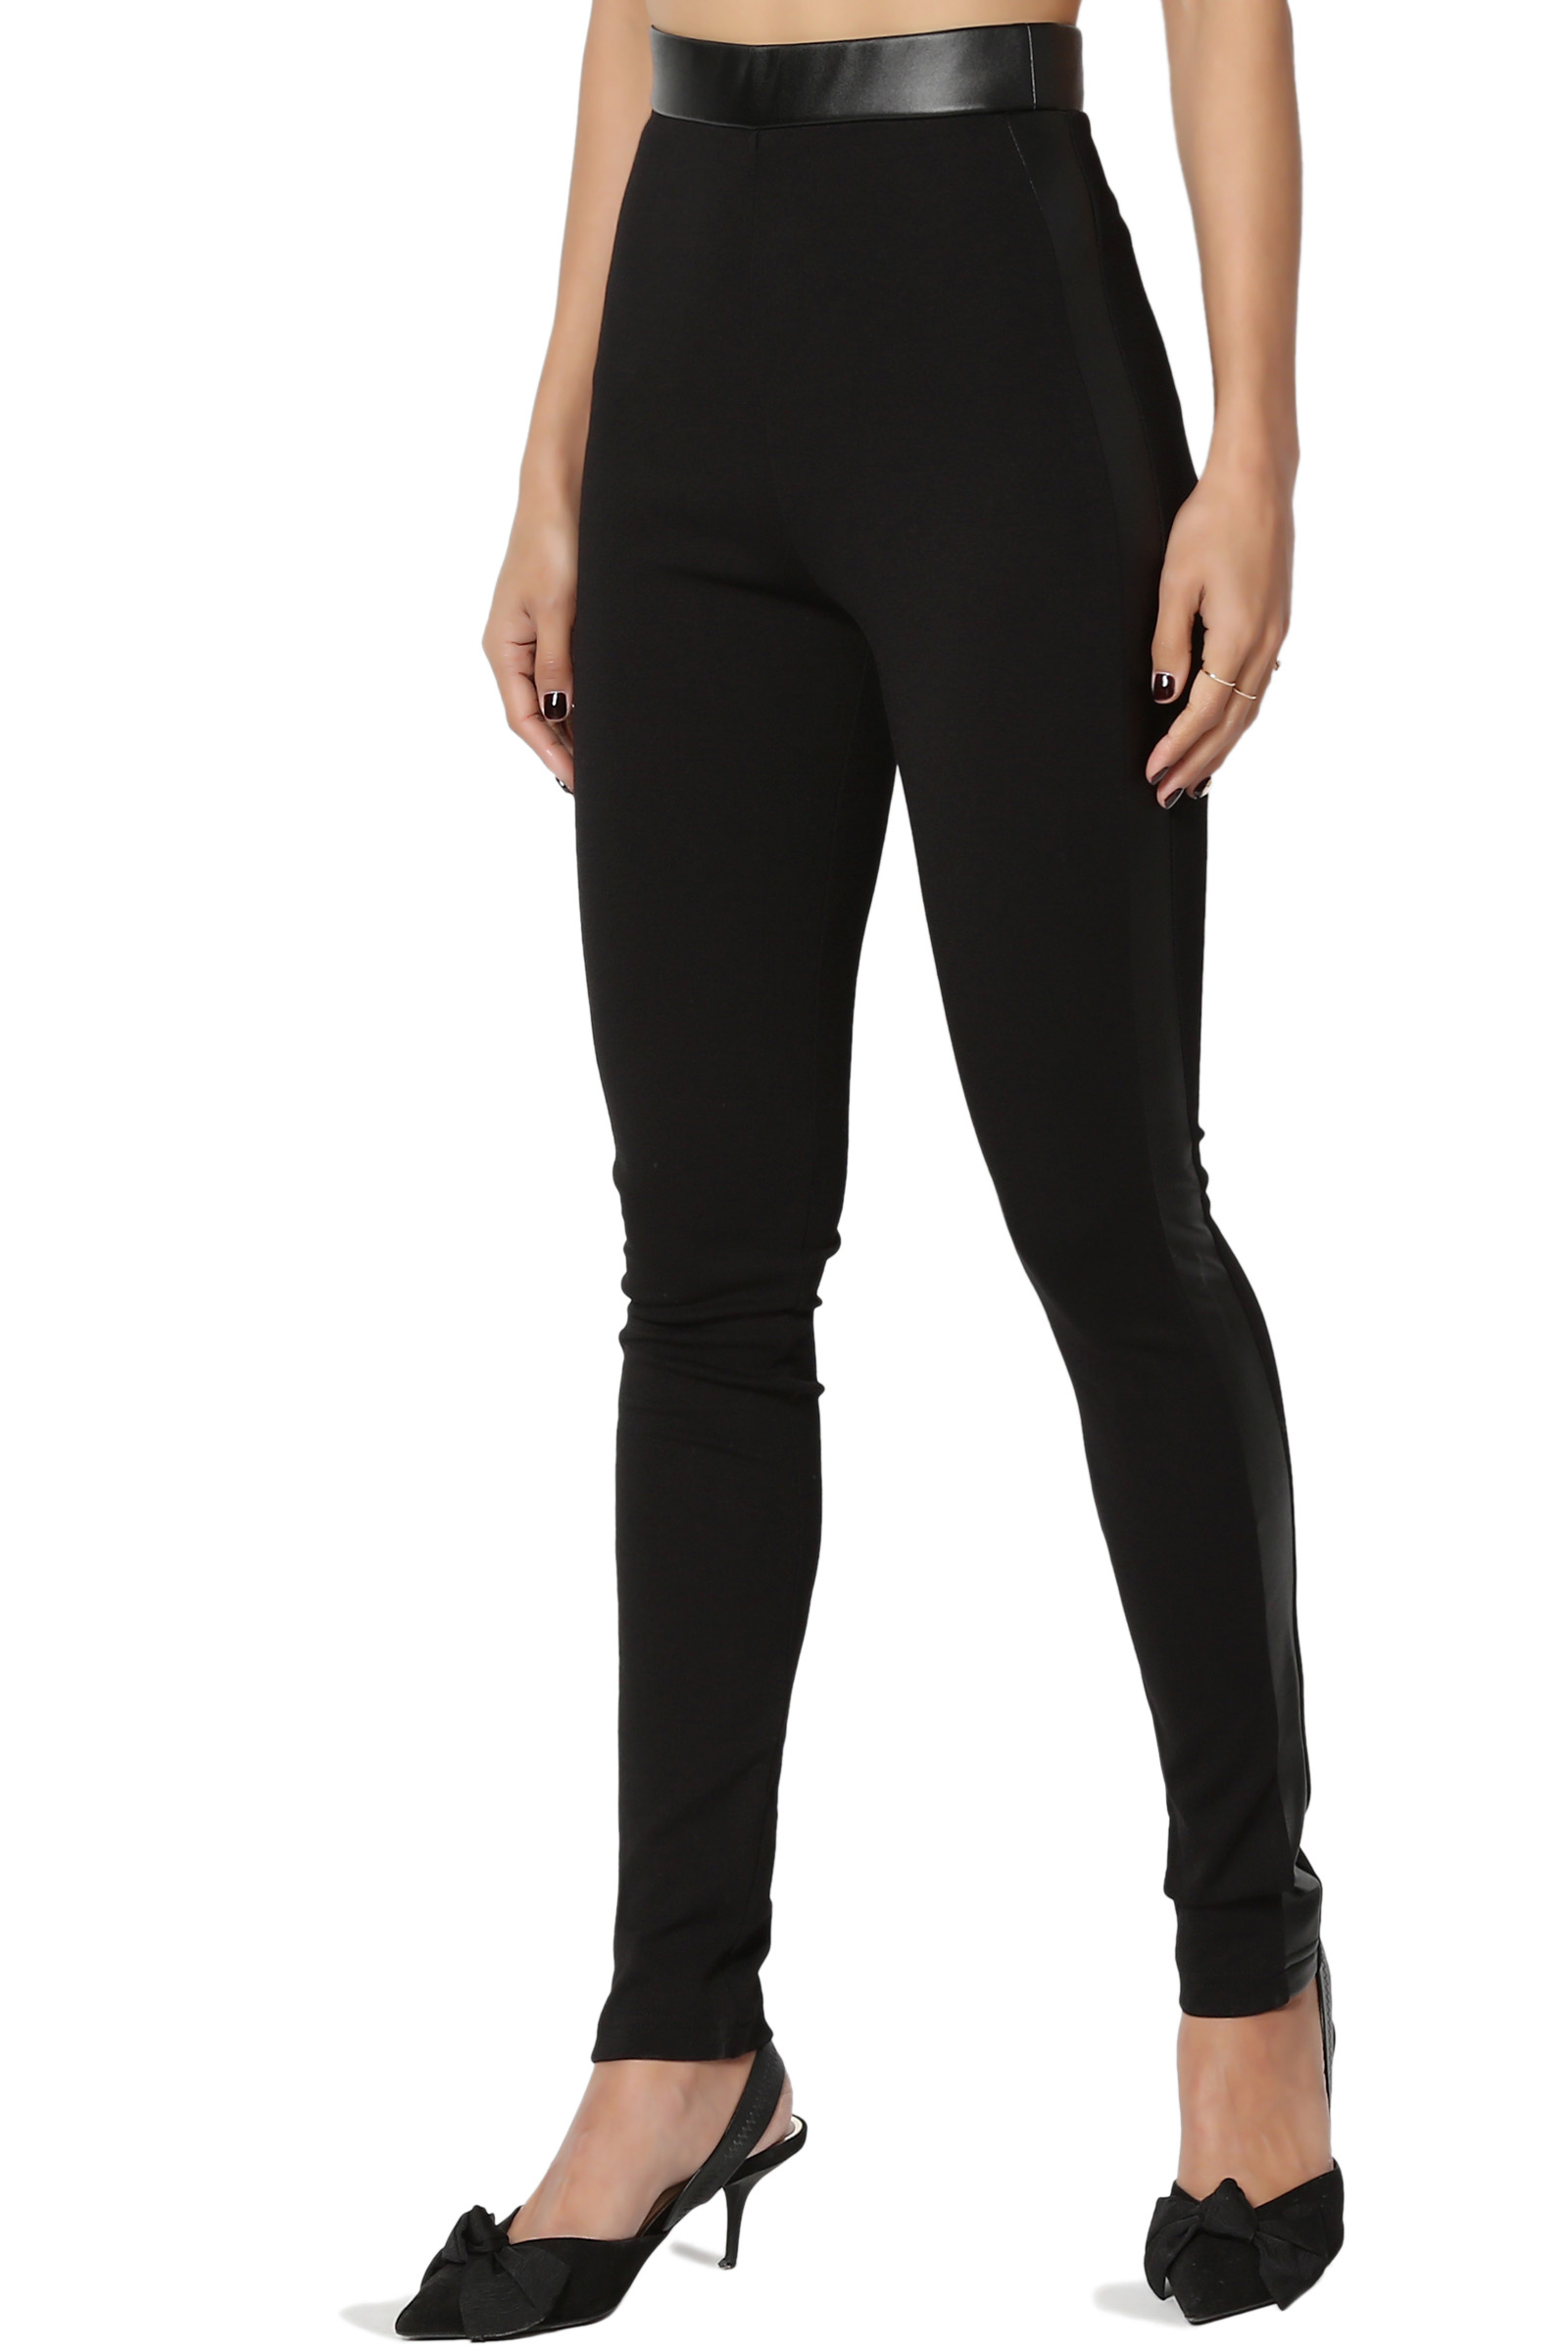 TheMogan Junior's Faux Leather Side High Waist Pull On Stretch Ponte Knit Skinny Pants